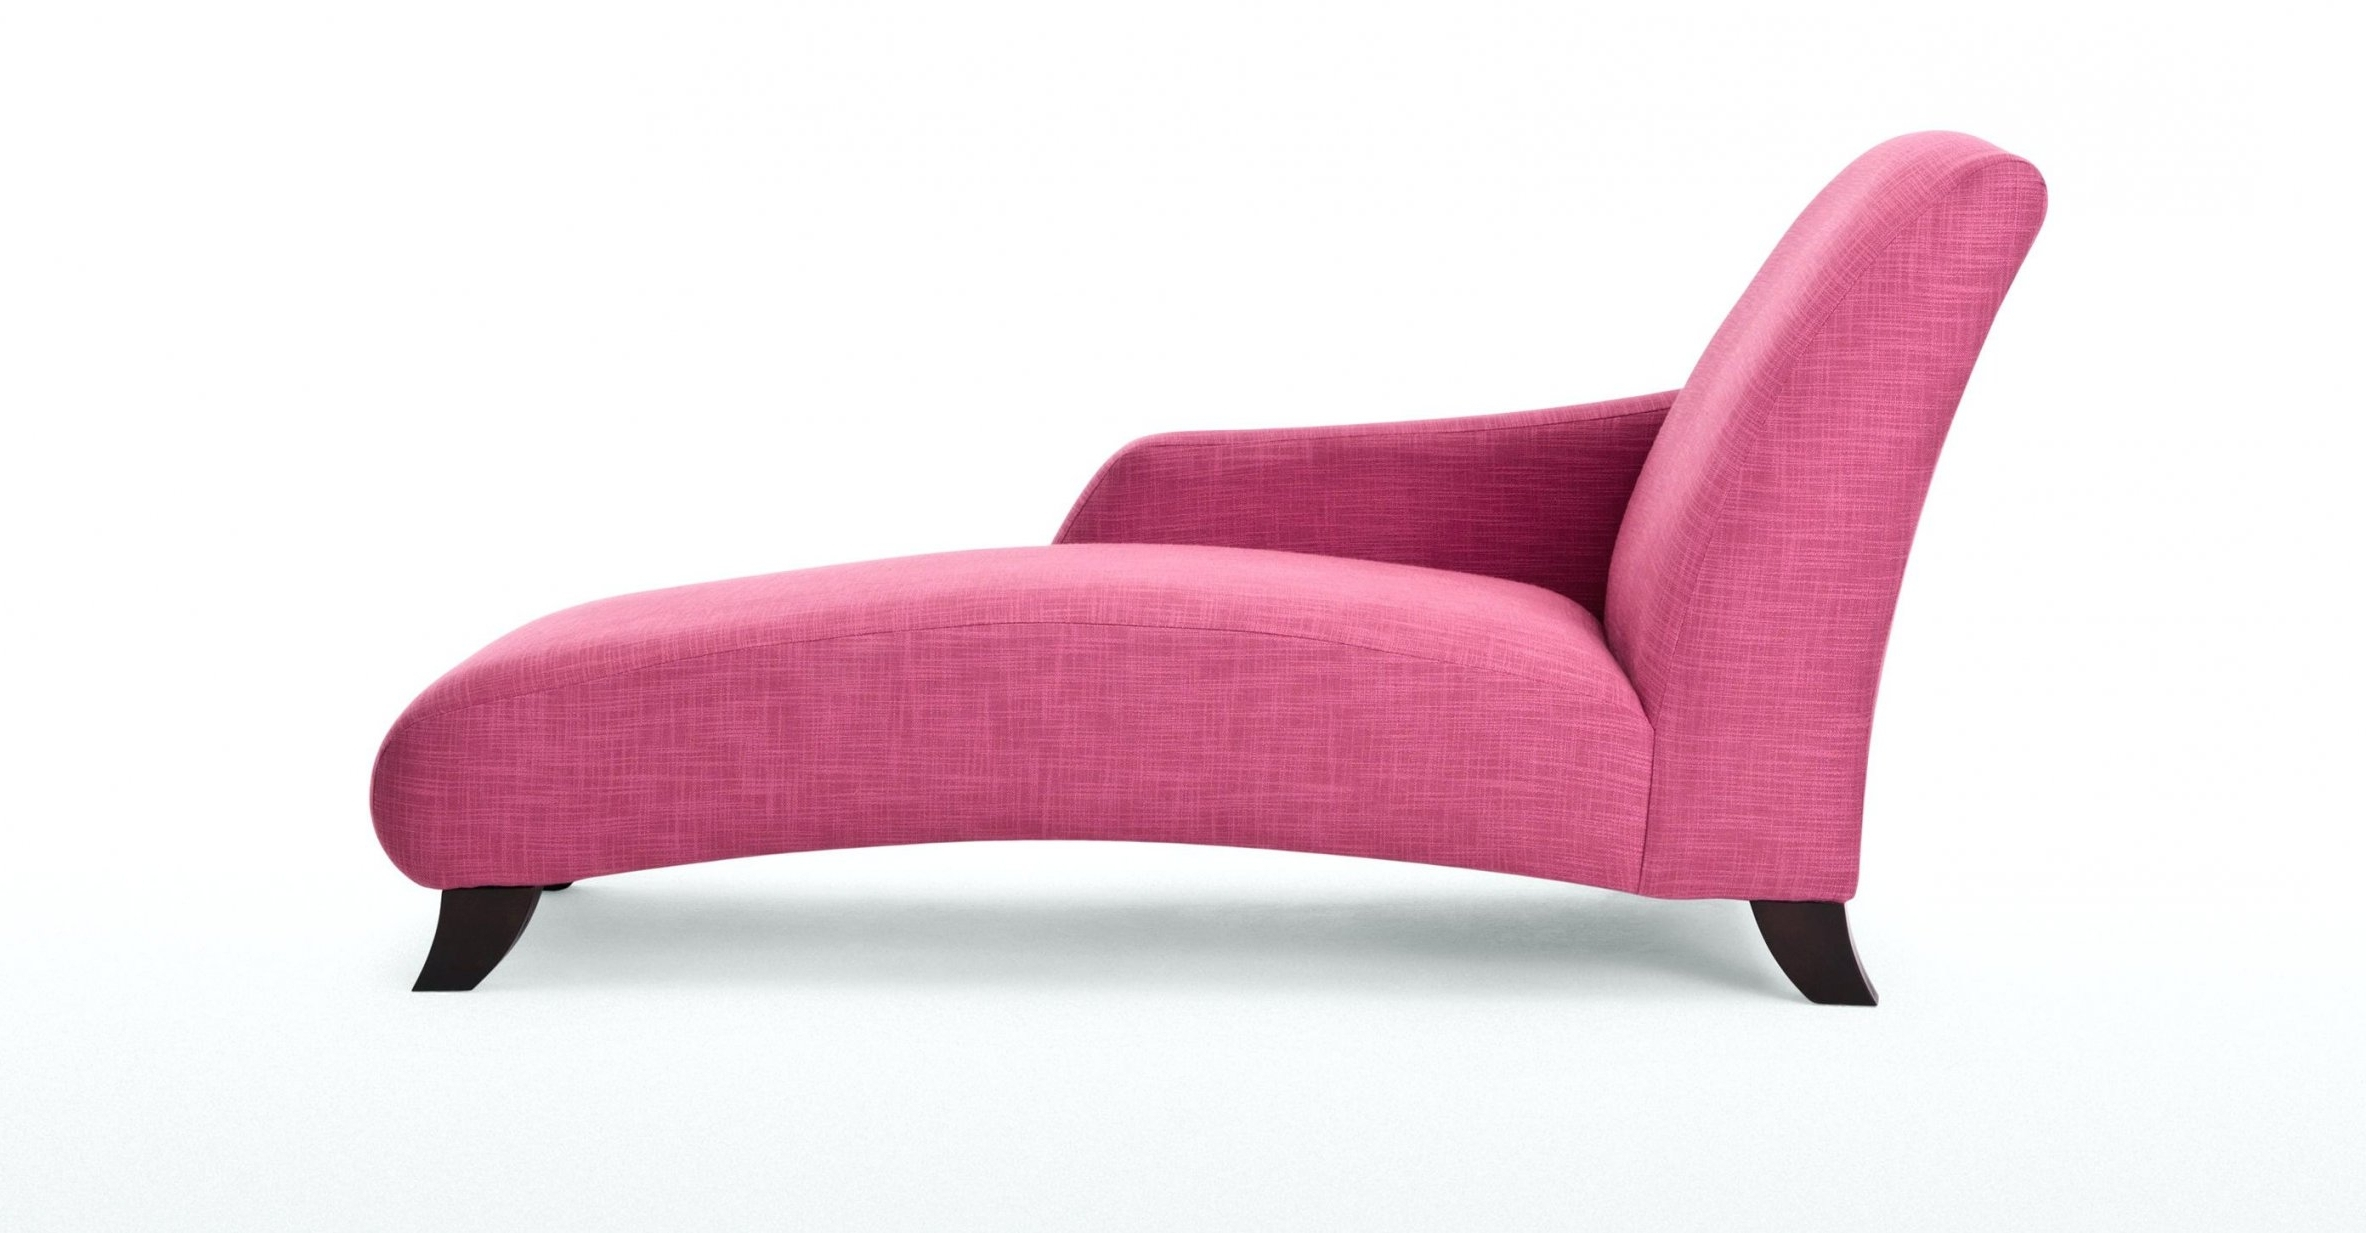 Best And Newest Pink Chaise Lounge Sofa Regarding Hot Pink Chaise Lounge Chairs (View 1 of 15)